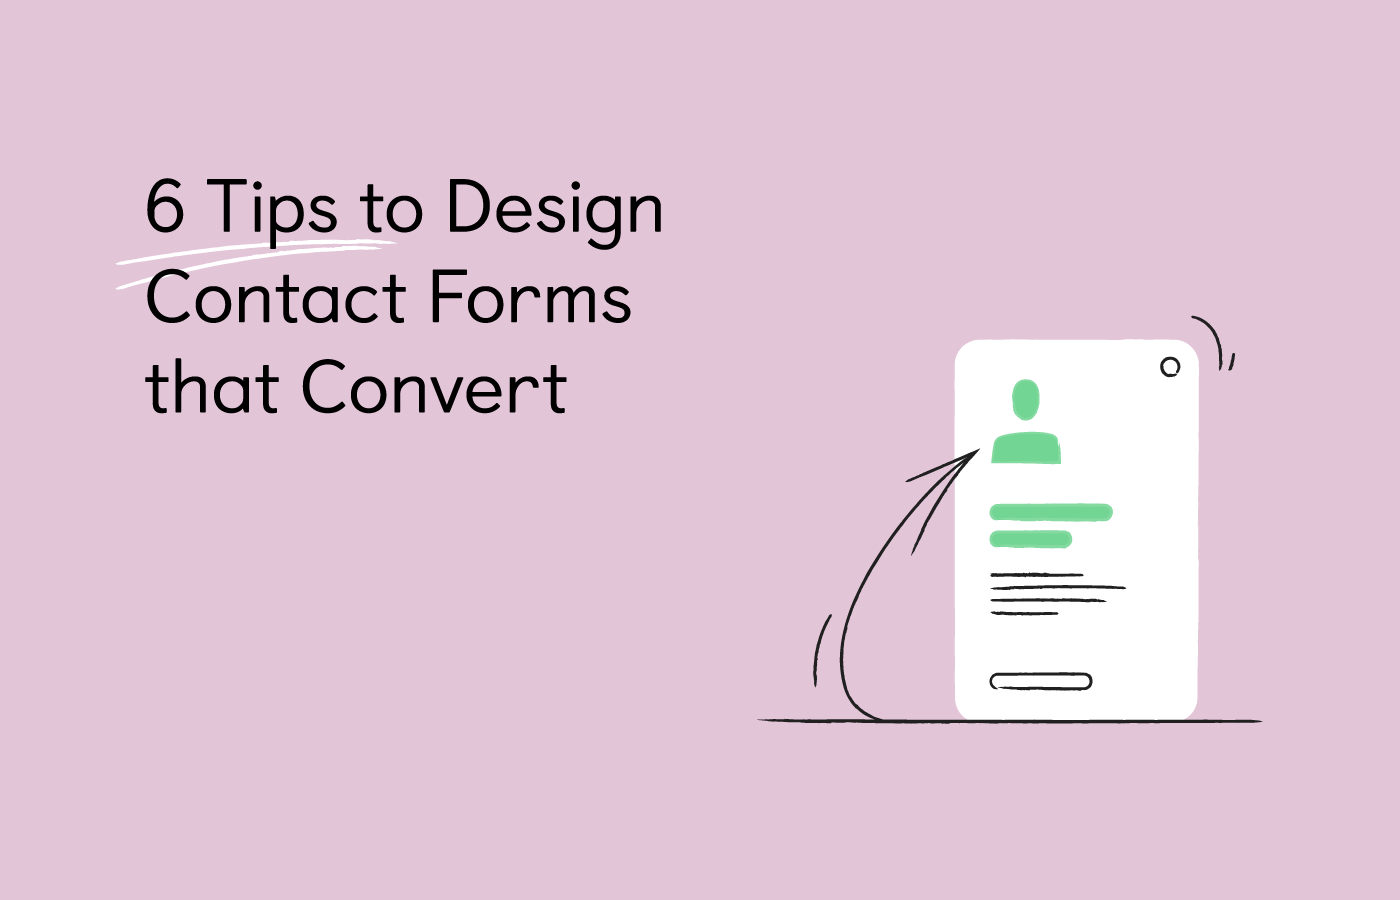 6 tips to design contact forms that convert